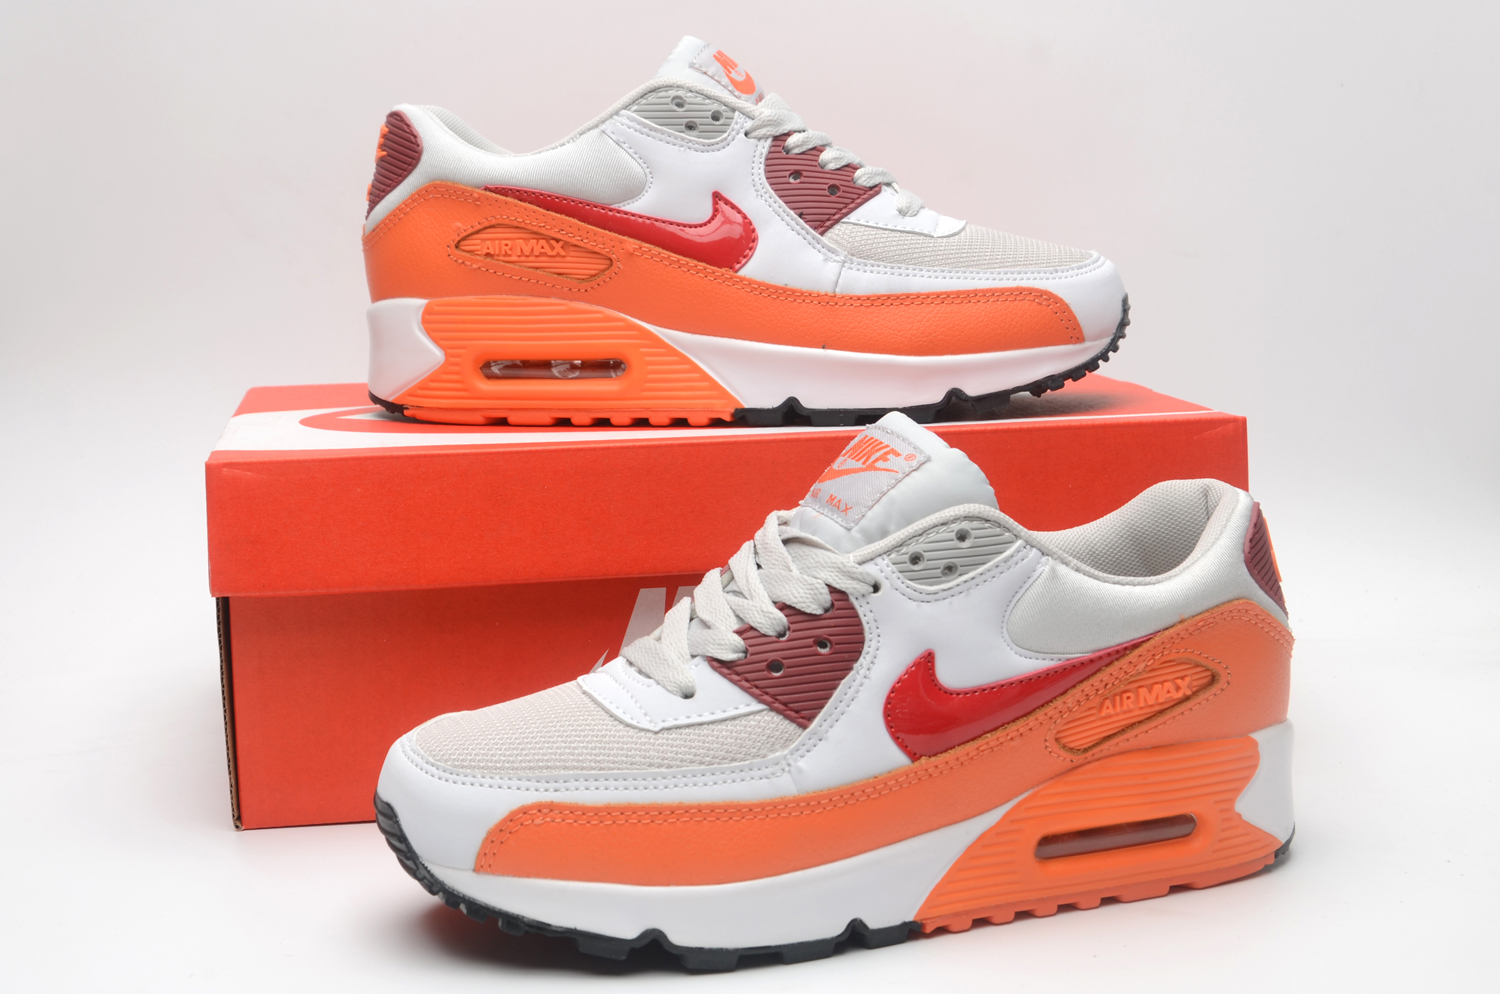 Women's Running weapon Air Max 90 Shoes 031